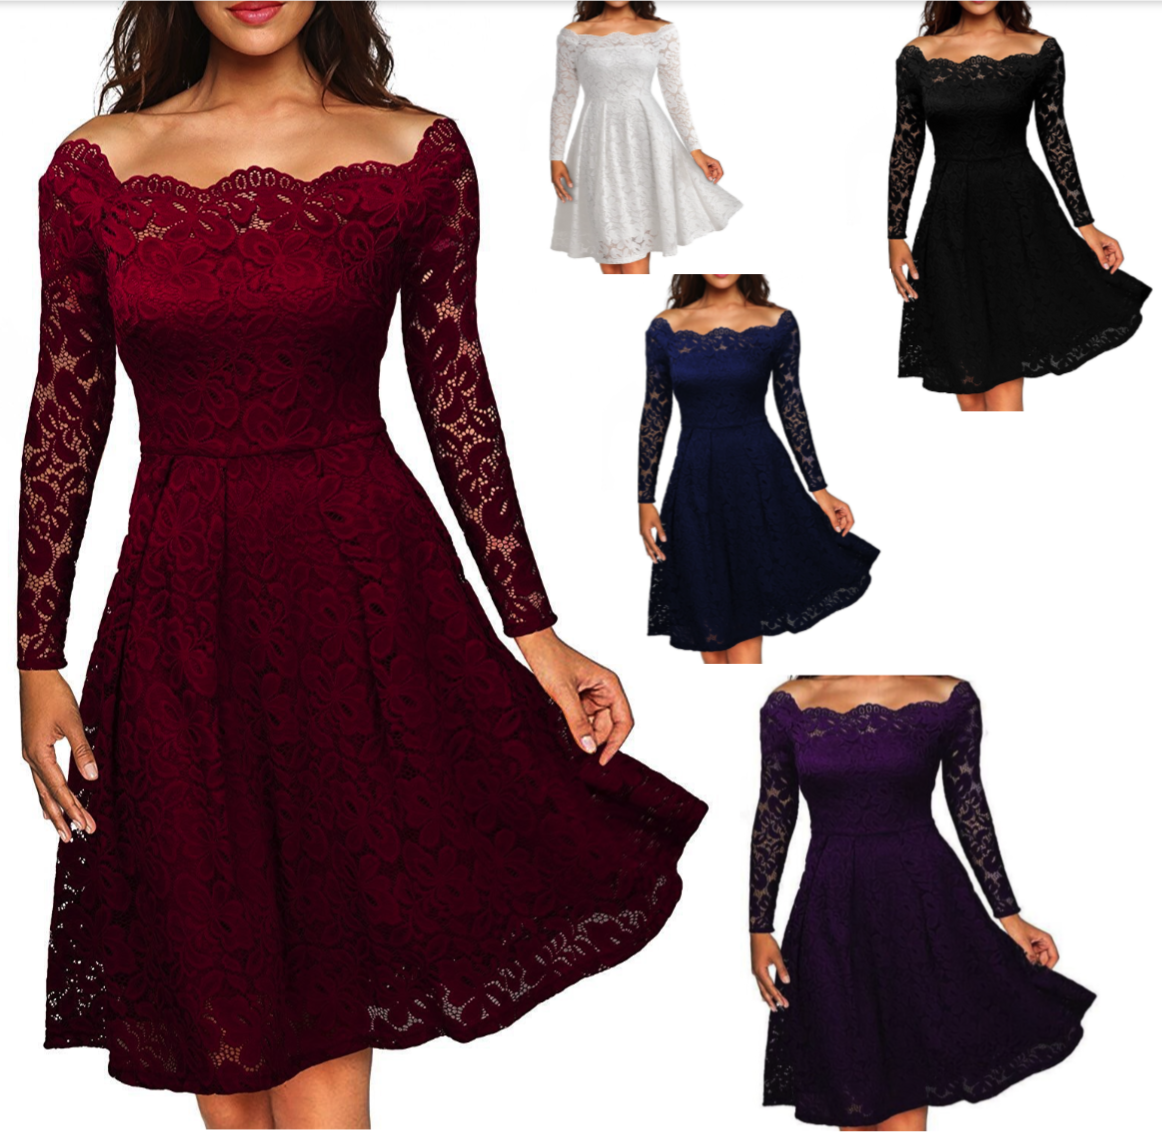 Dress - Women's Vintage Lace Boat Neck Formal Wedding Cocktail Evening Party Swing Dress